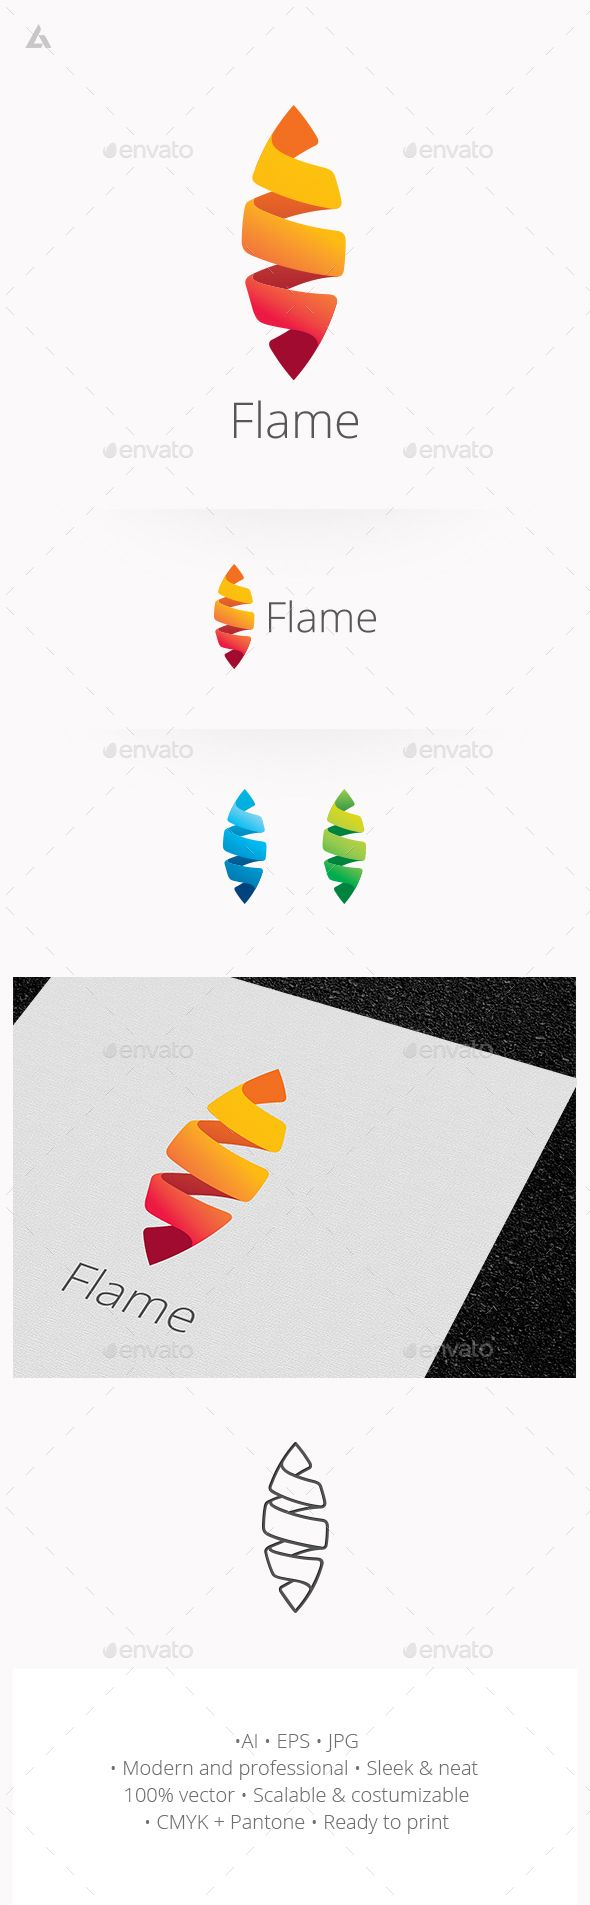 Flame logo  #cocoon #cool #corporate • Available here → http://graphicriver.net/item/flame-logo/14680201?s_rank=69&ref=pxcr